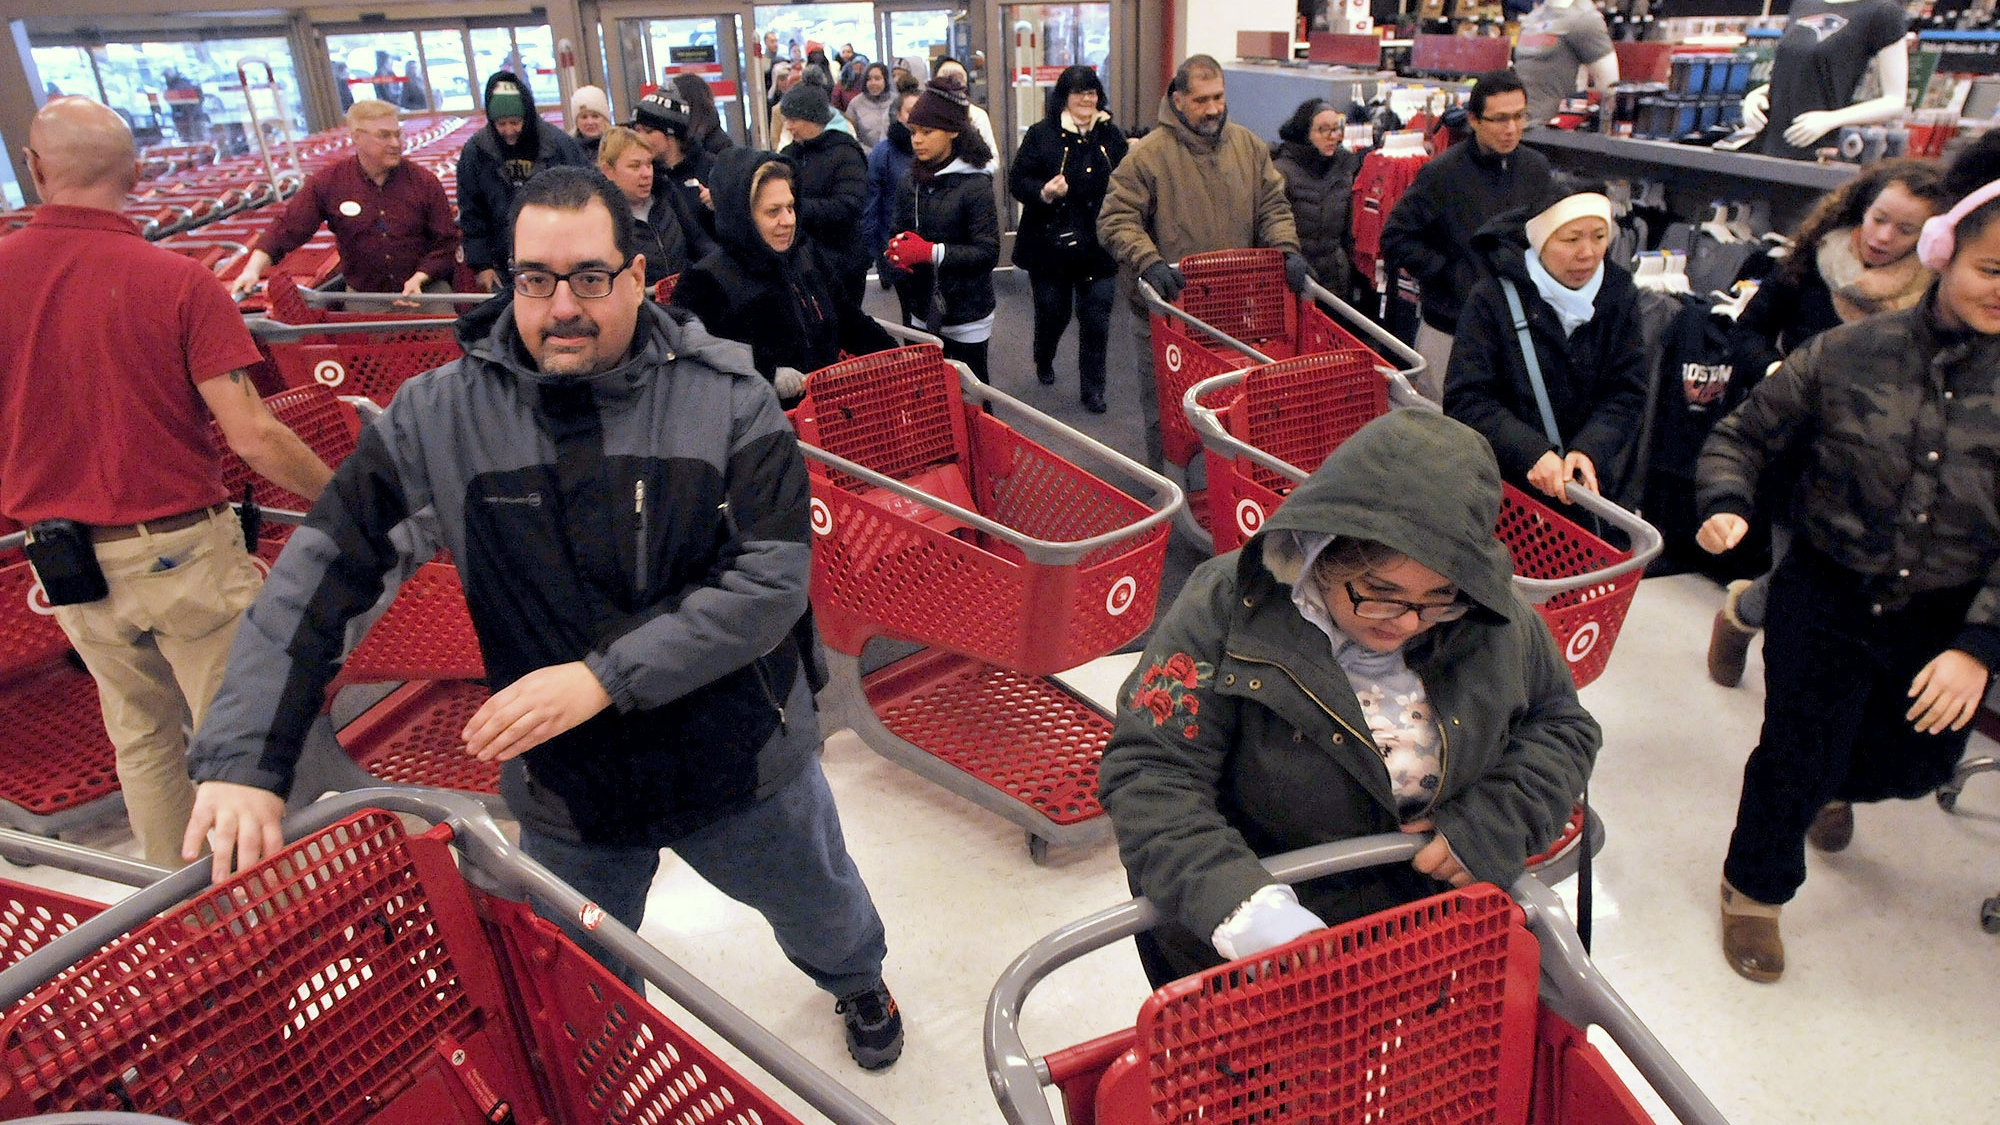 Frantic Black Friday shoppers wrestle over kitchenware, topple TVs to score deals